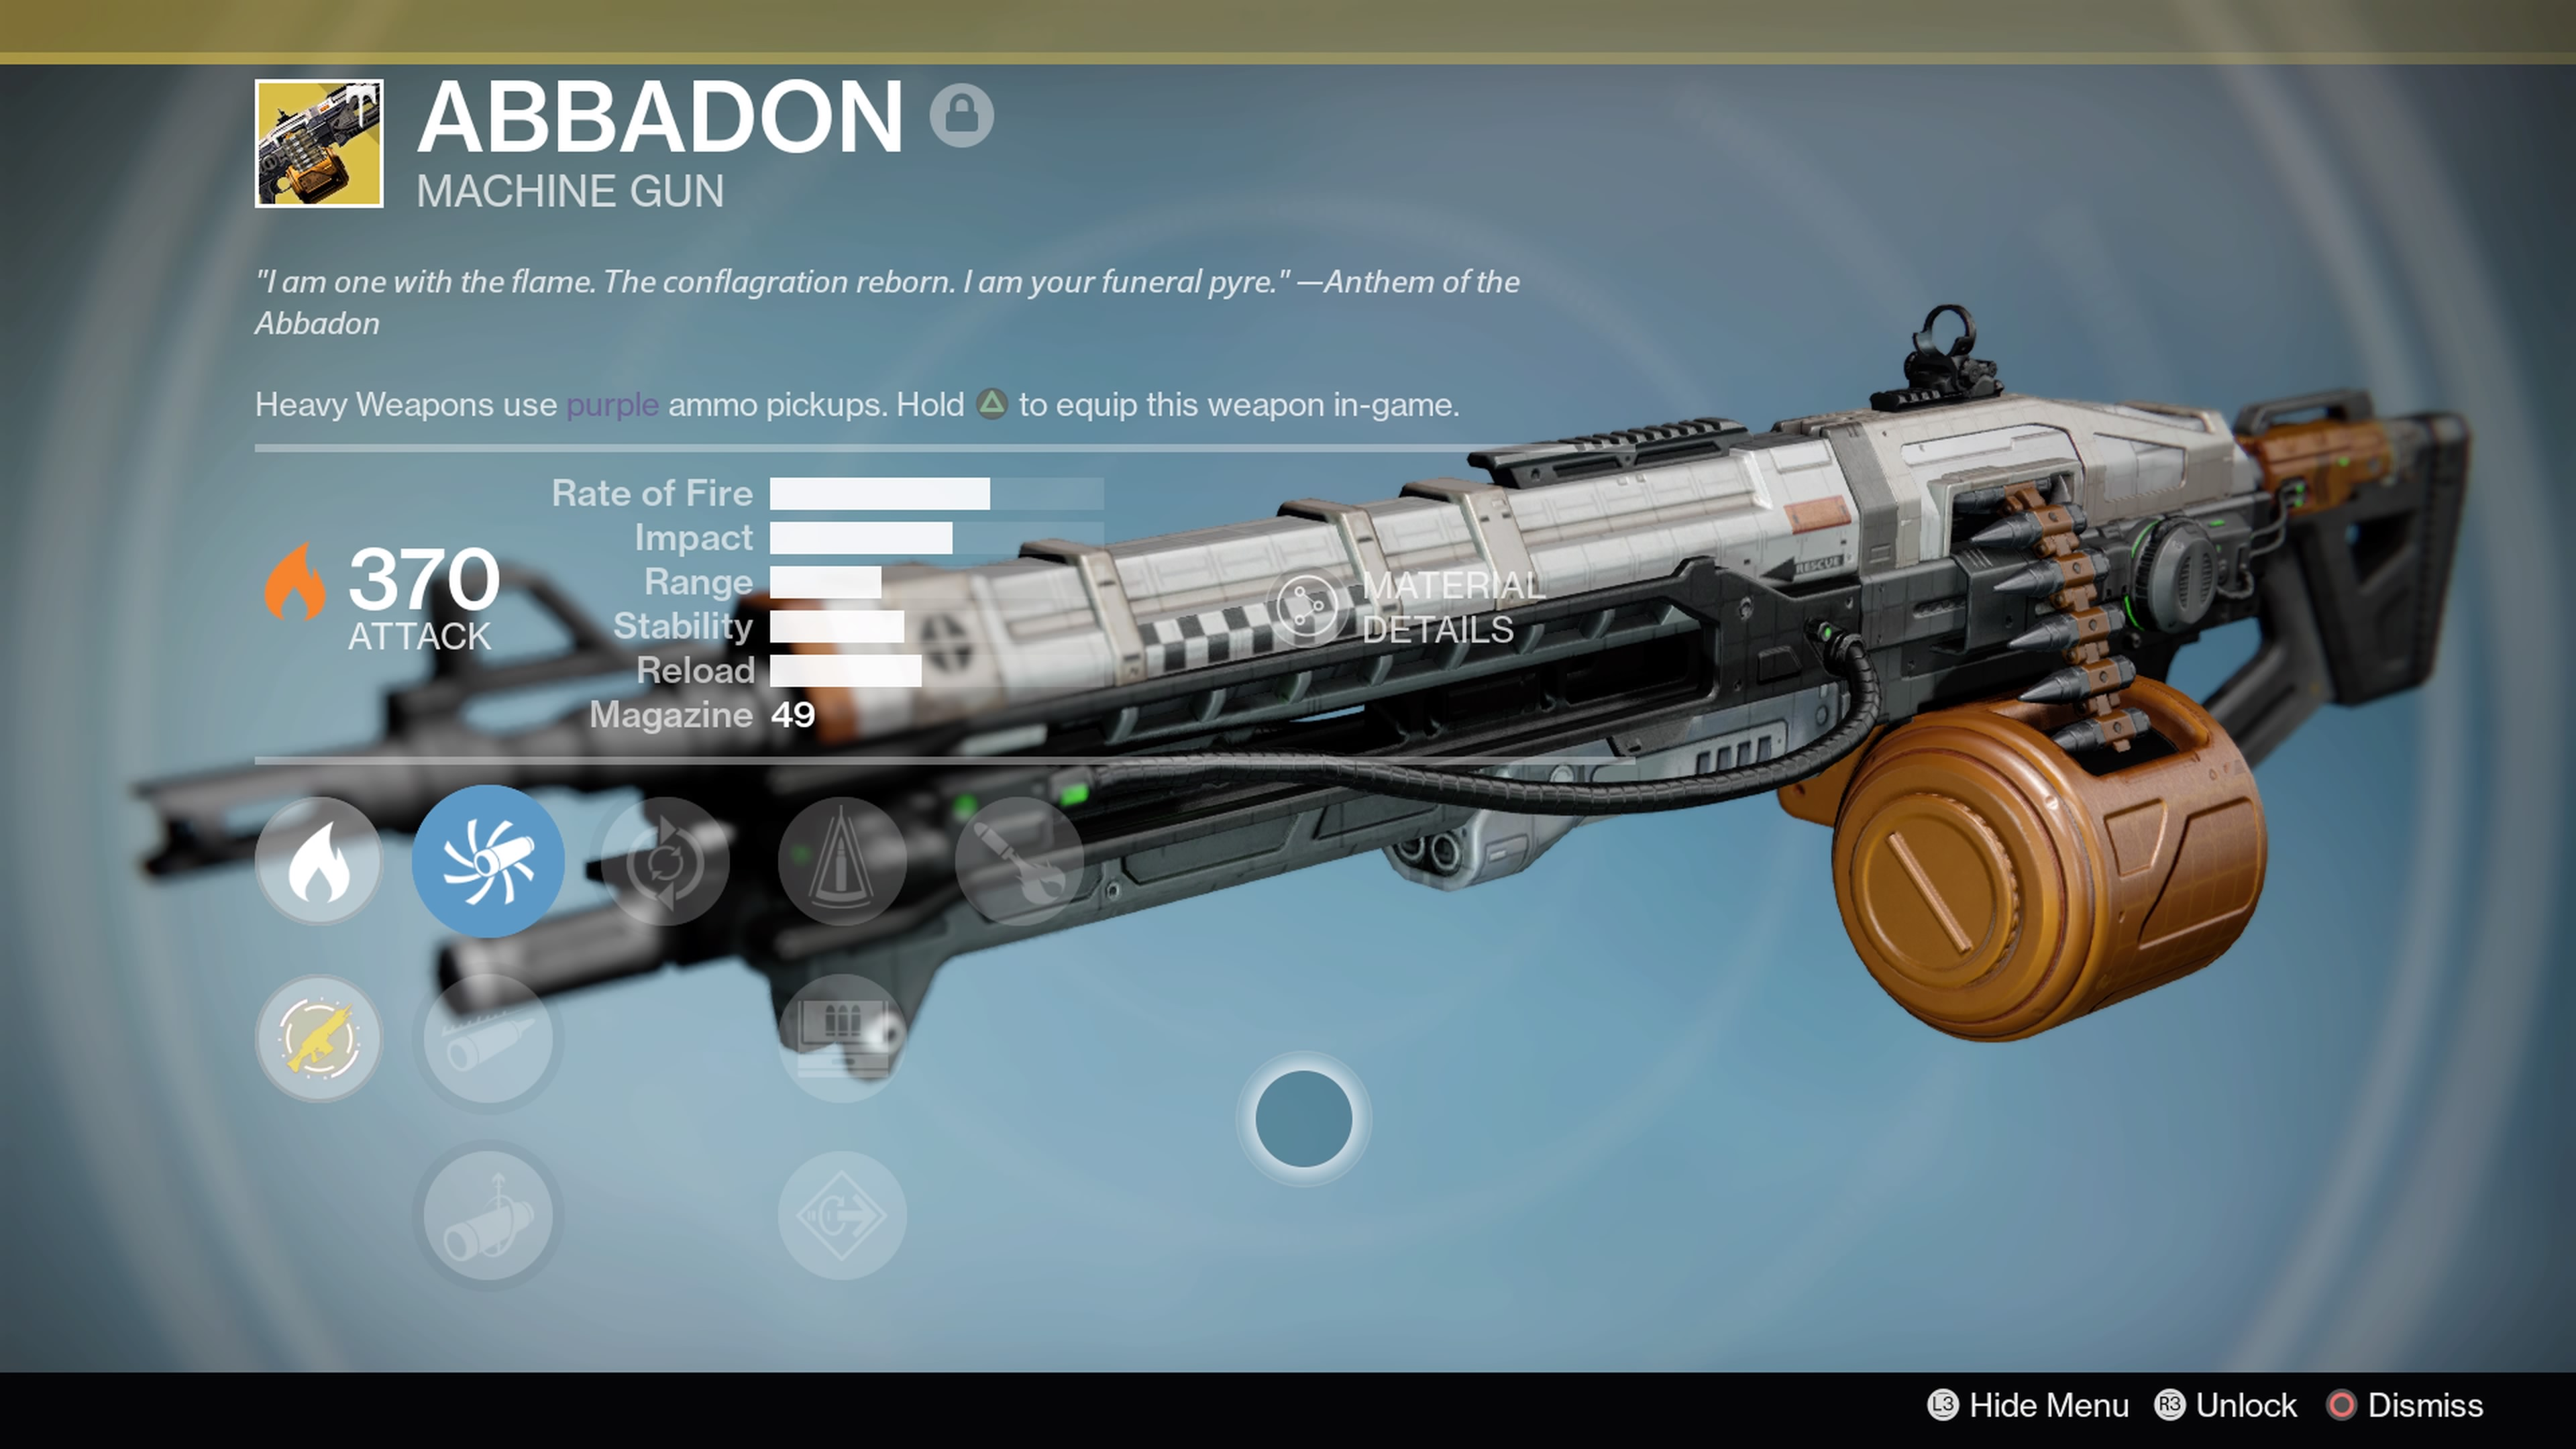 Here's a look at the Abbadon Exotic Heavy Weapon in Destiny